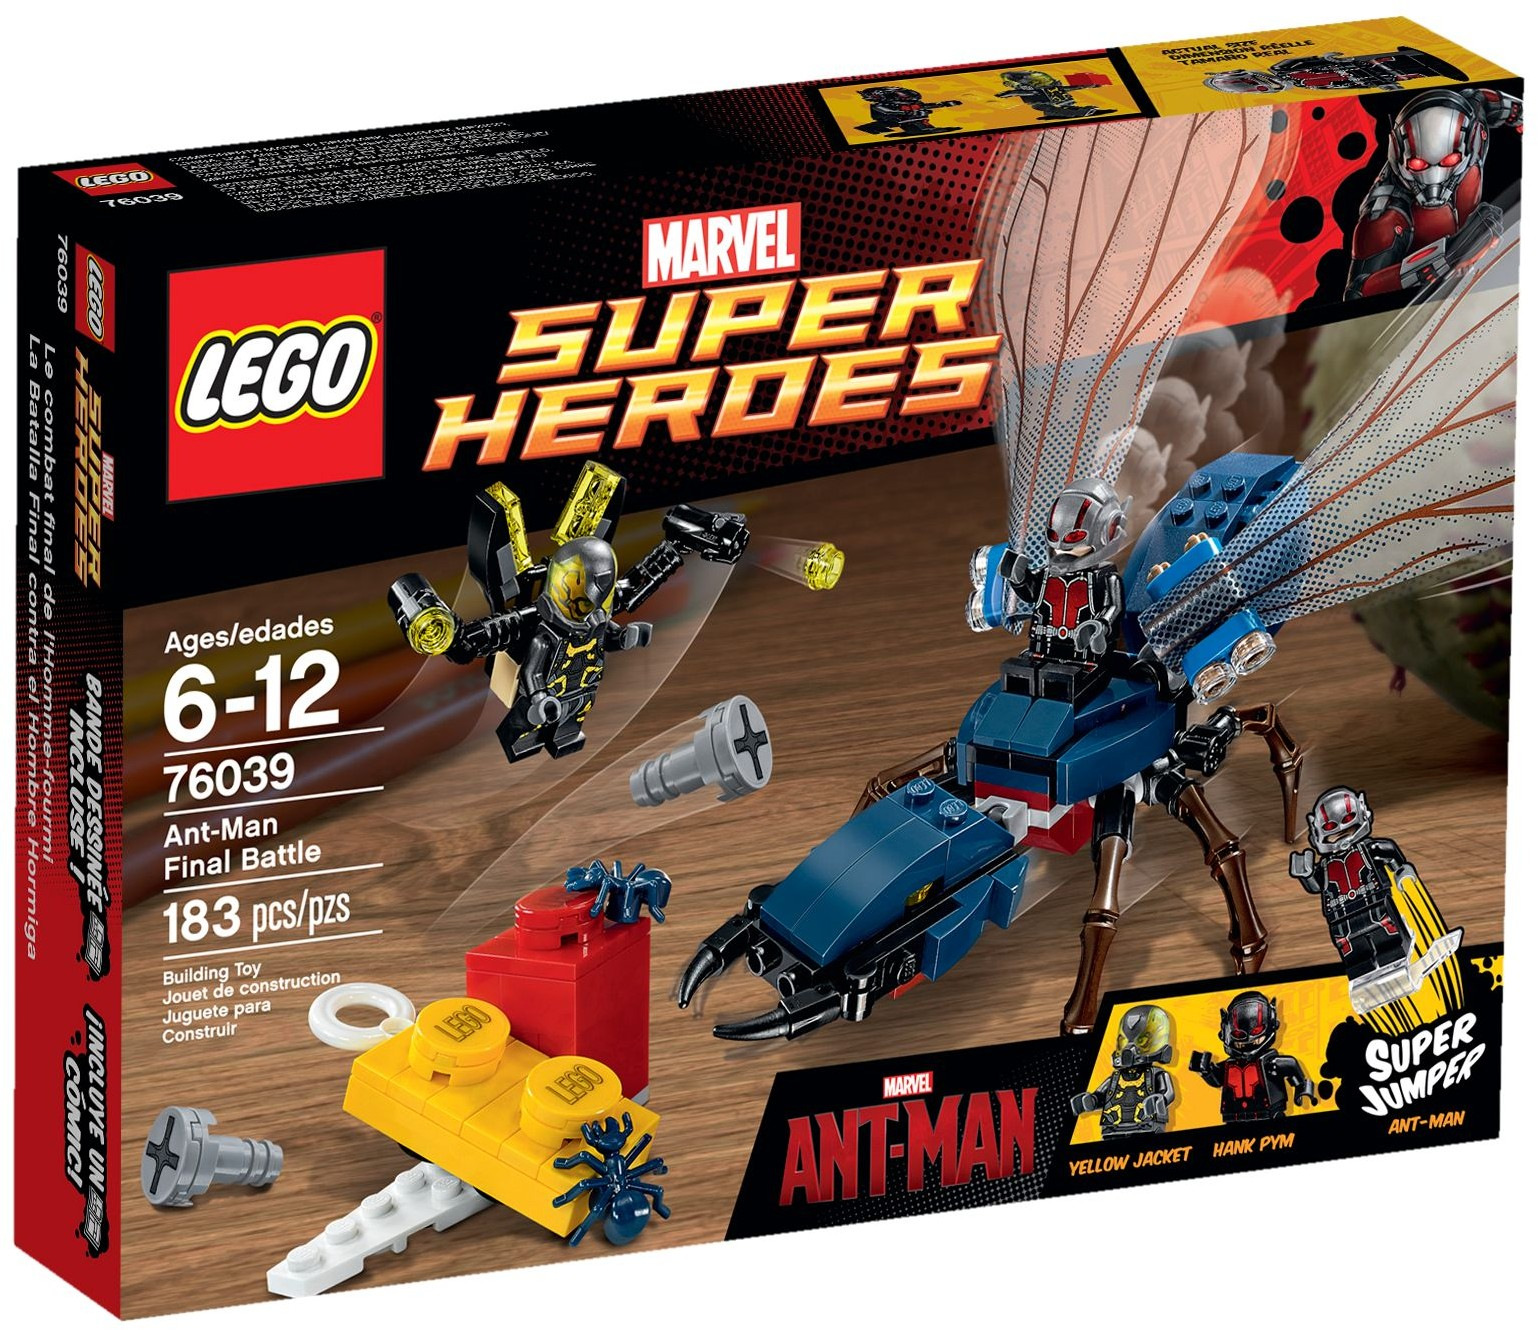 LEGO 76039 - Super Heroes - Ant-Man Final Battle